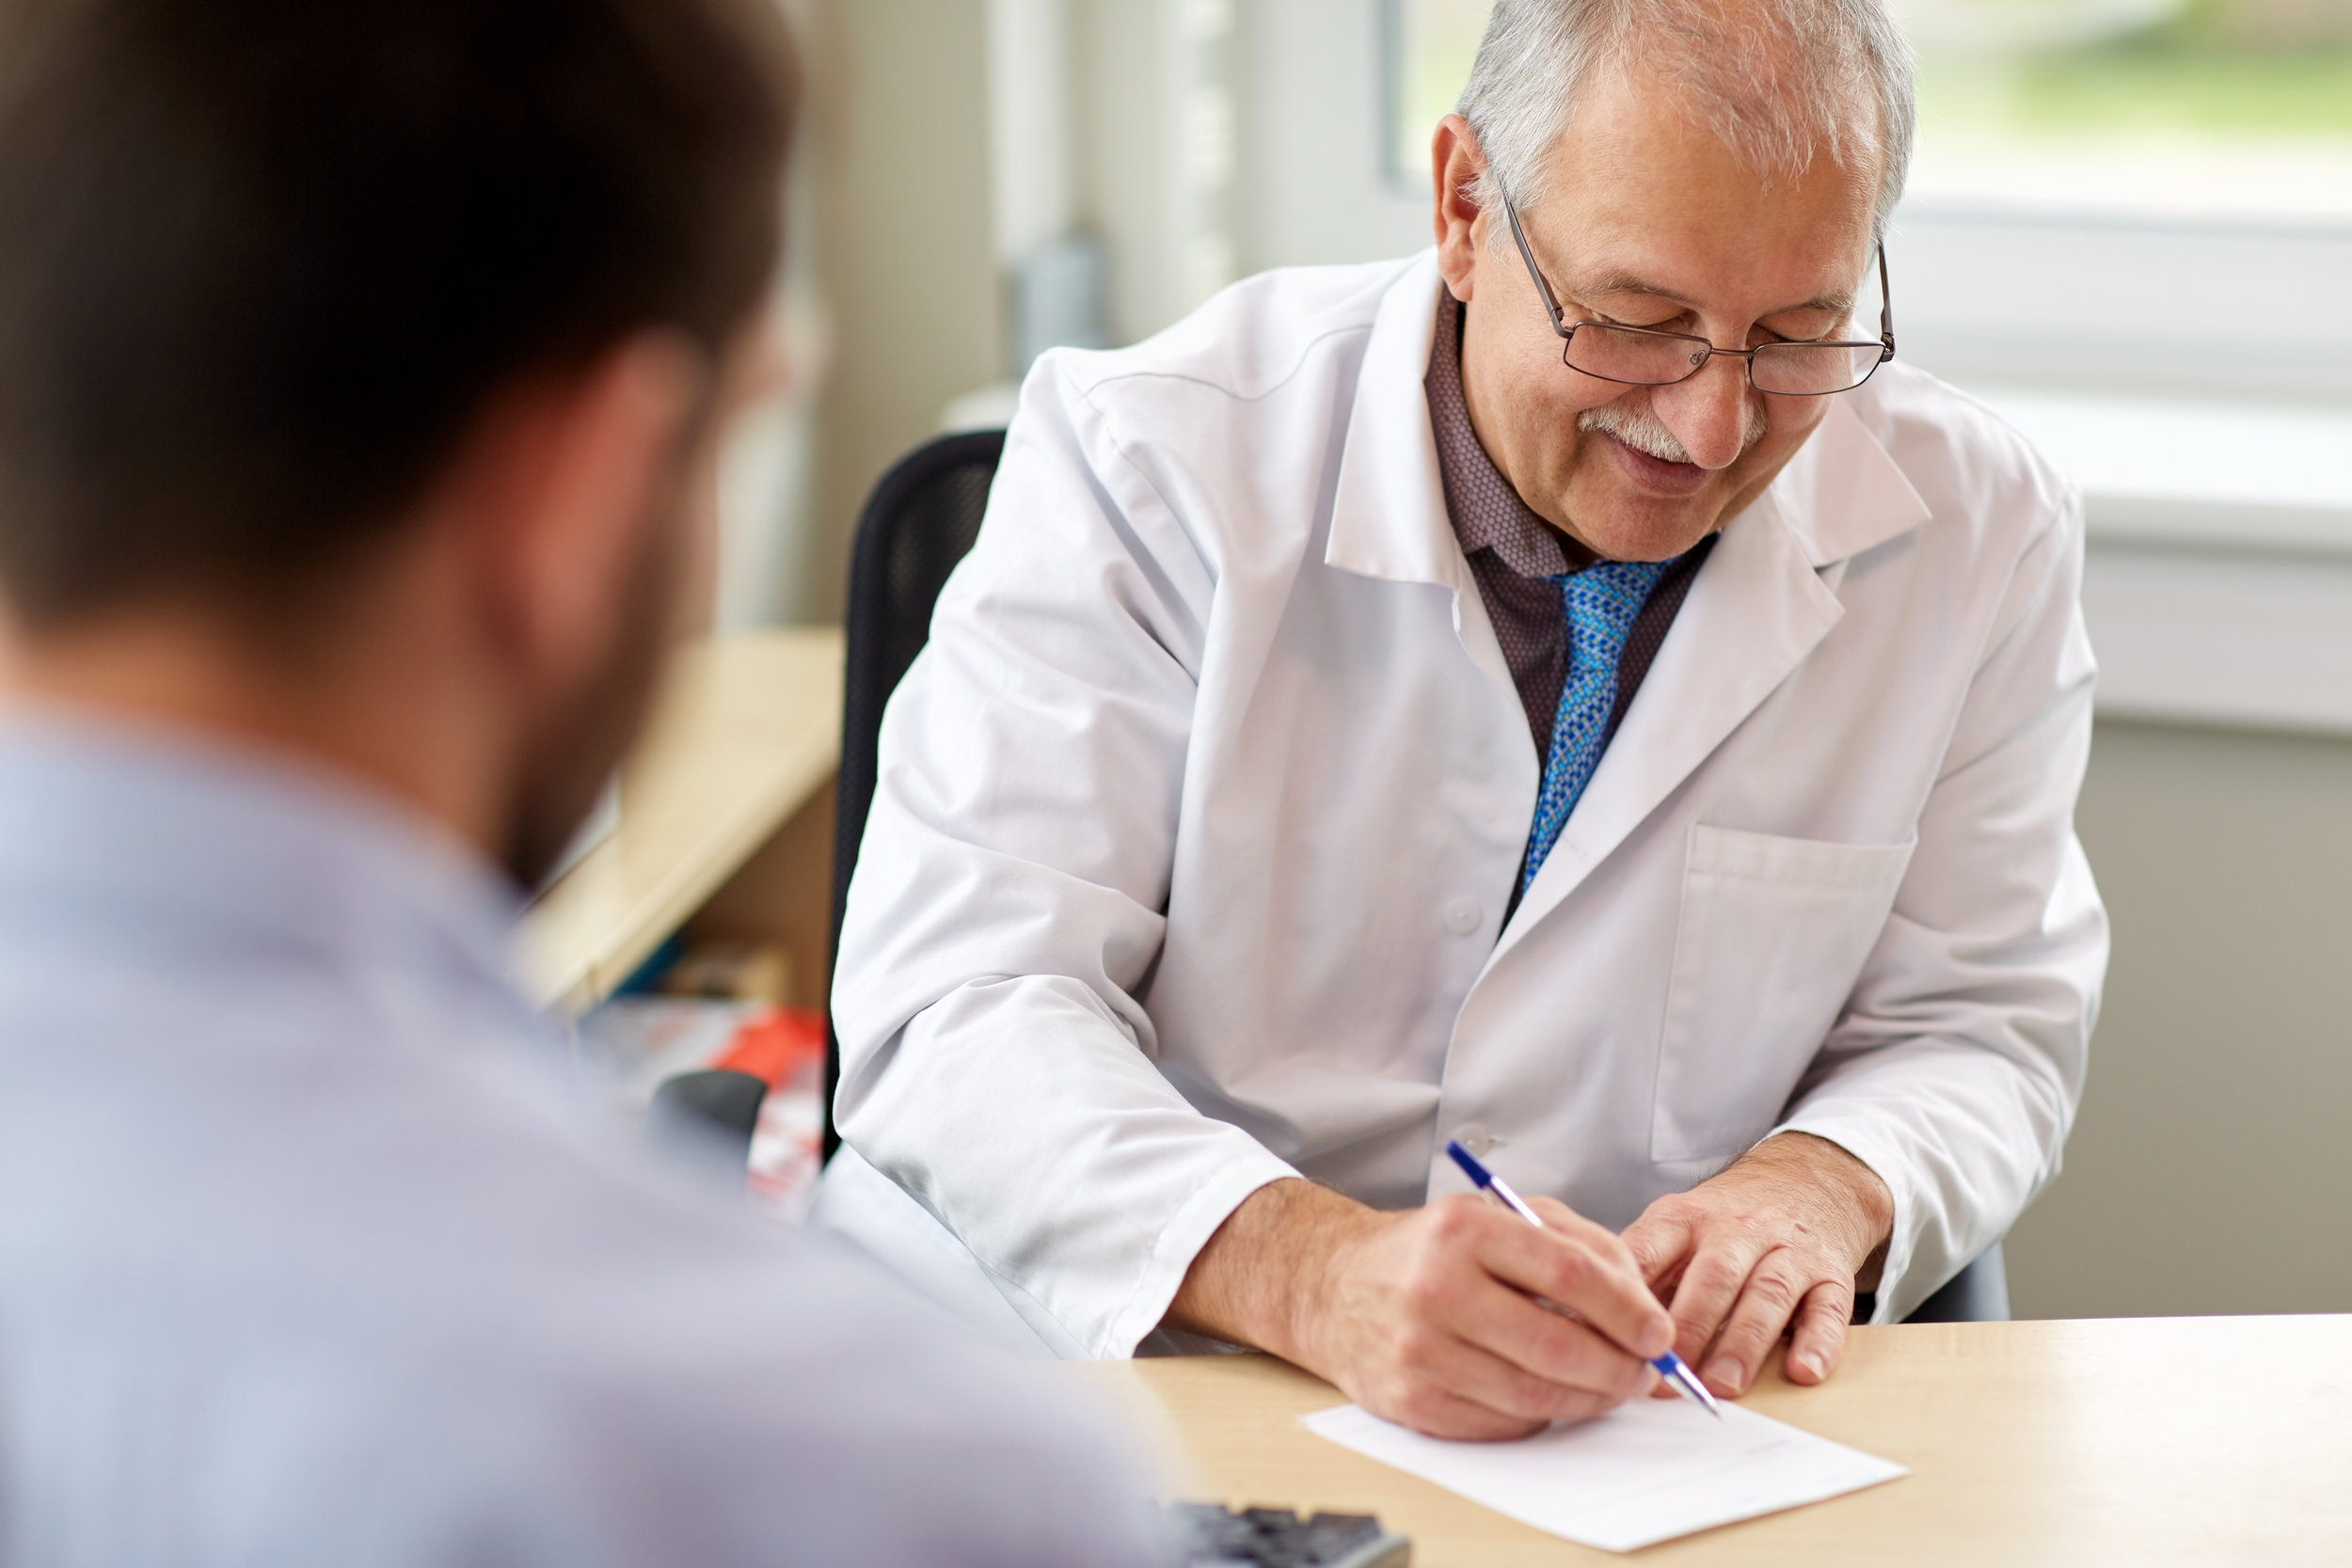 Older male doctor writing a prescription for male patient at a clinic